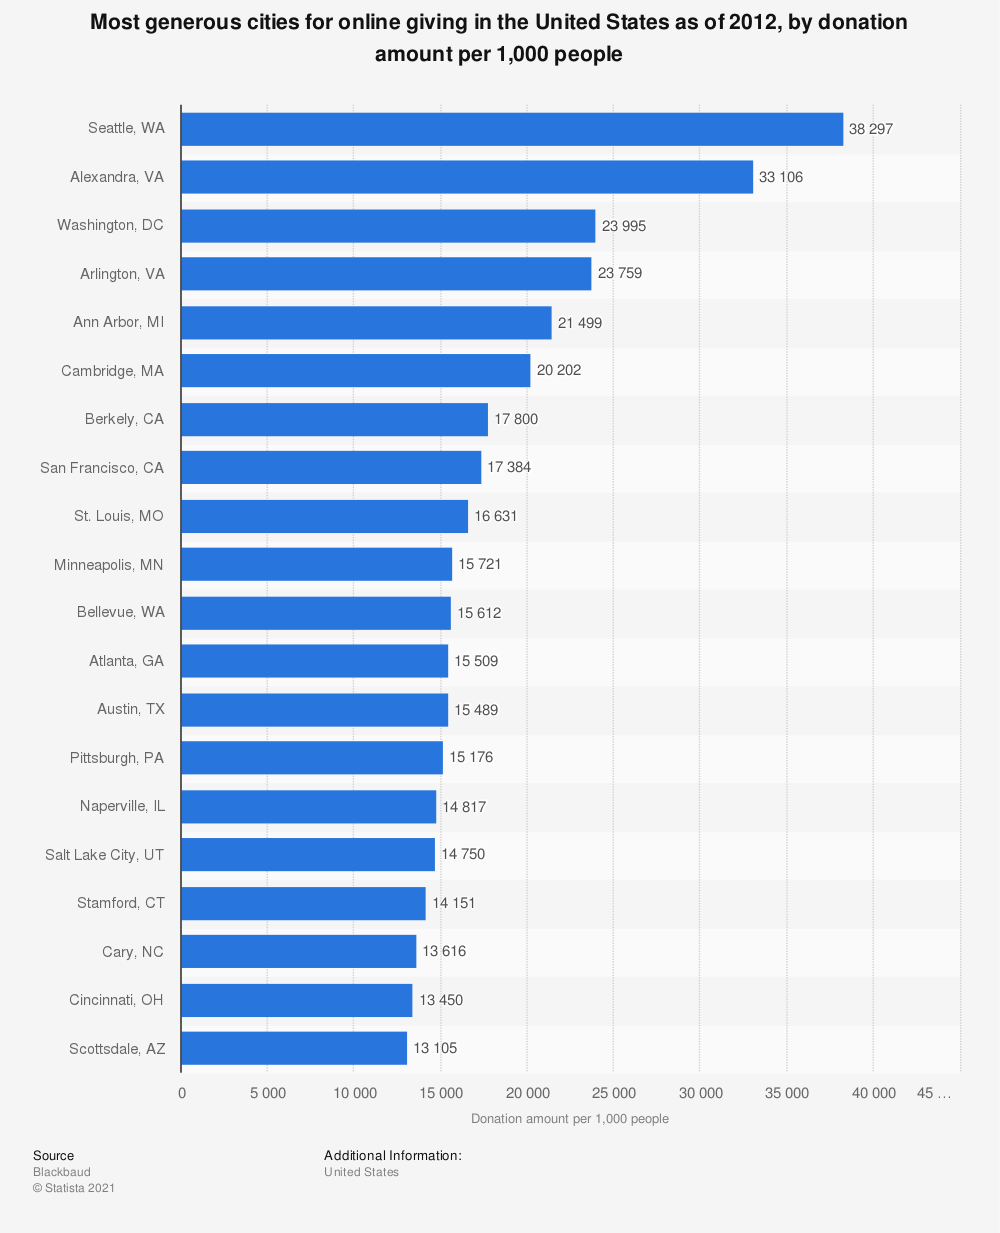 Statistic: Most generous cities for online giving in the United States as of 2012, by donation amount per 1,000 people | Statista